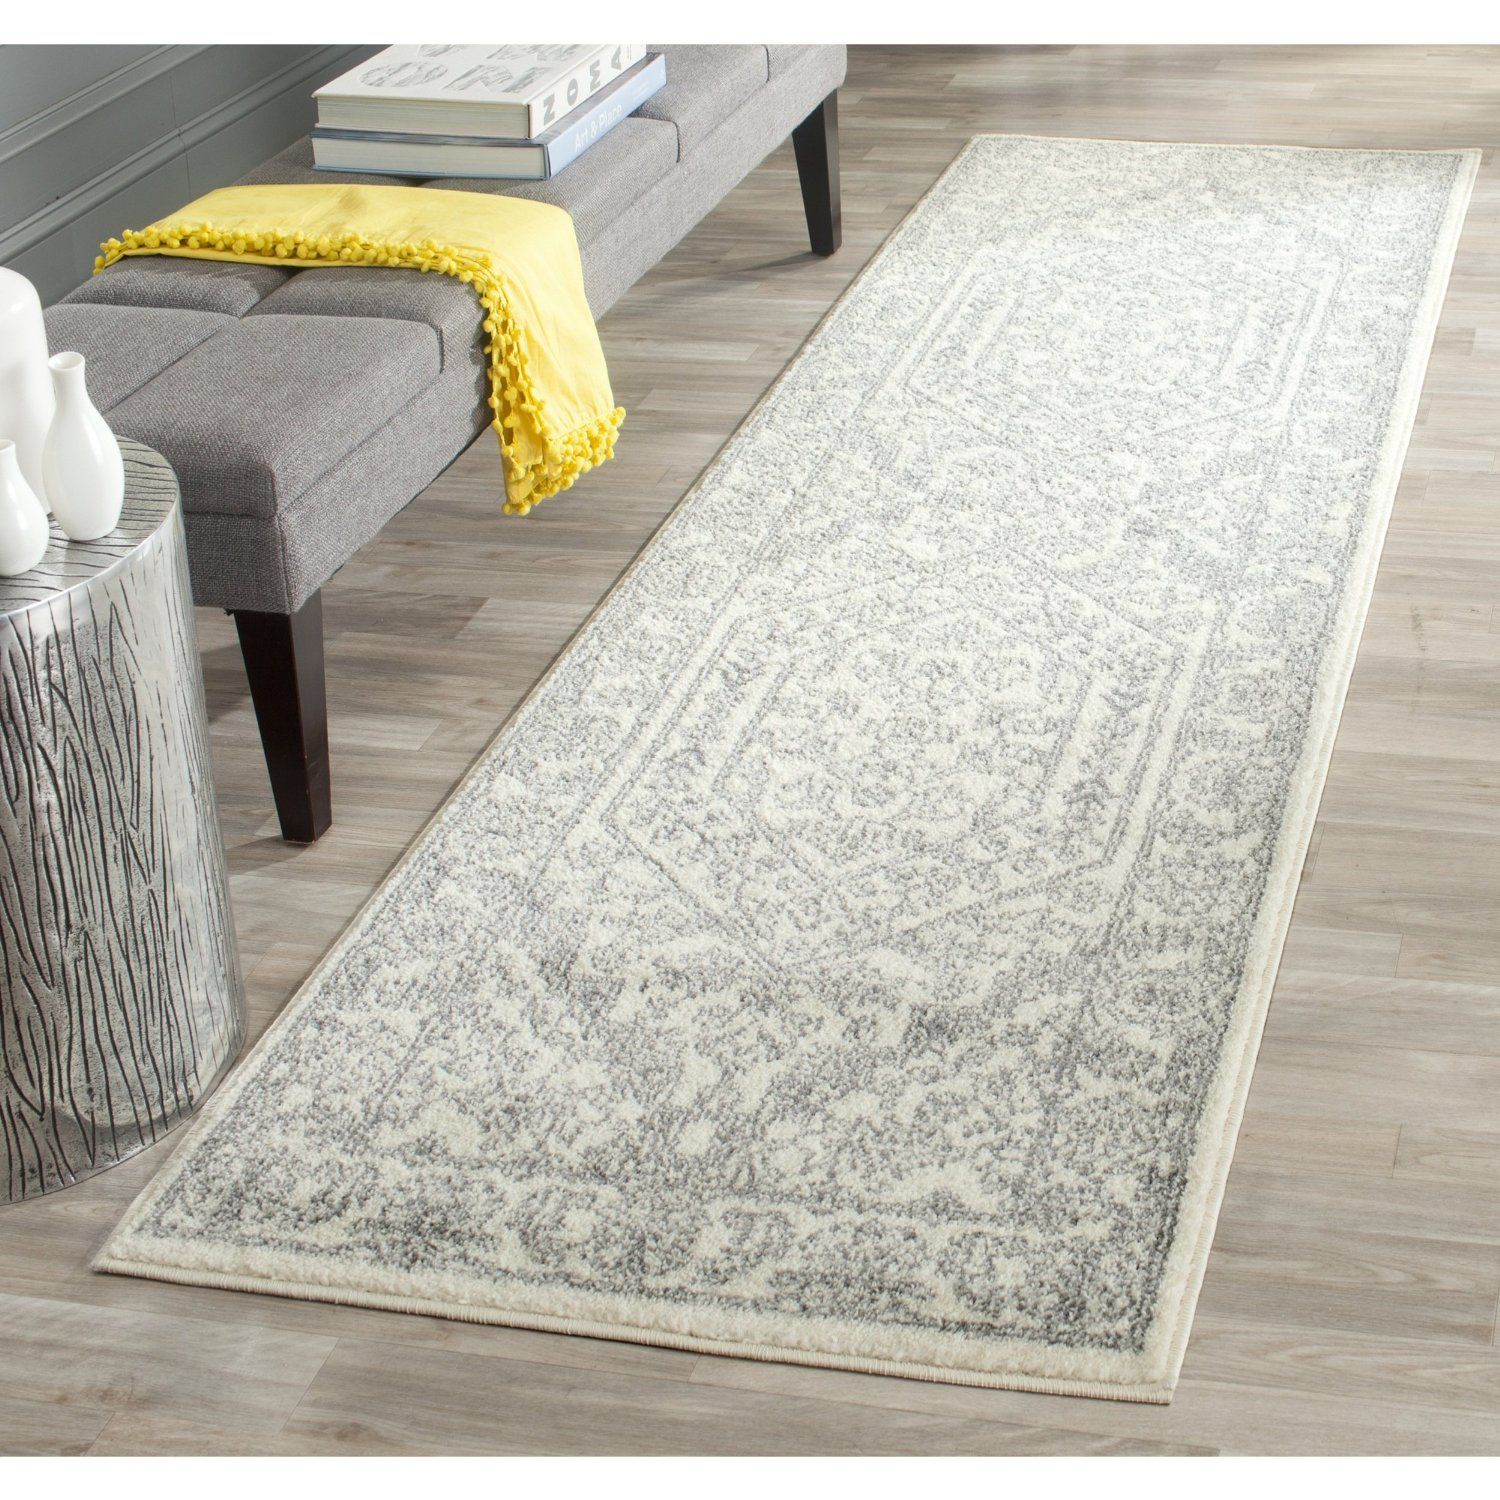 Amazon Safavieh Adirondack Collection Adr108B Ivory And Unique Kitchen Runner Rugs Review